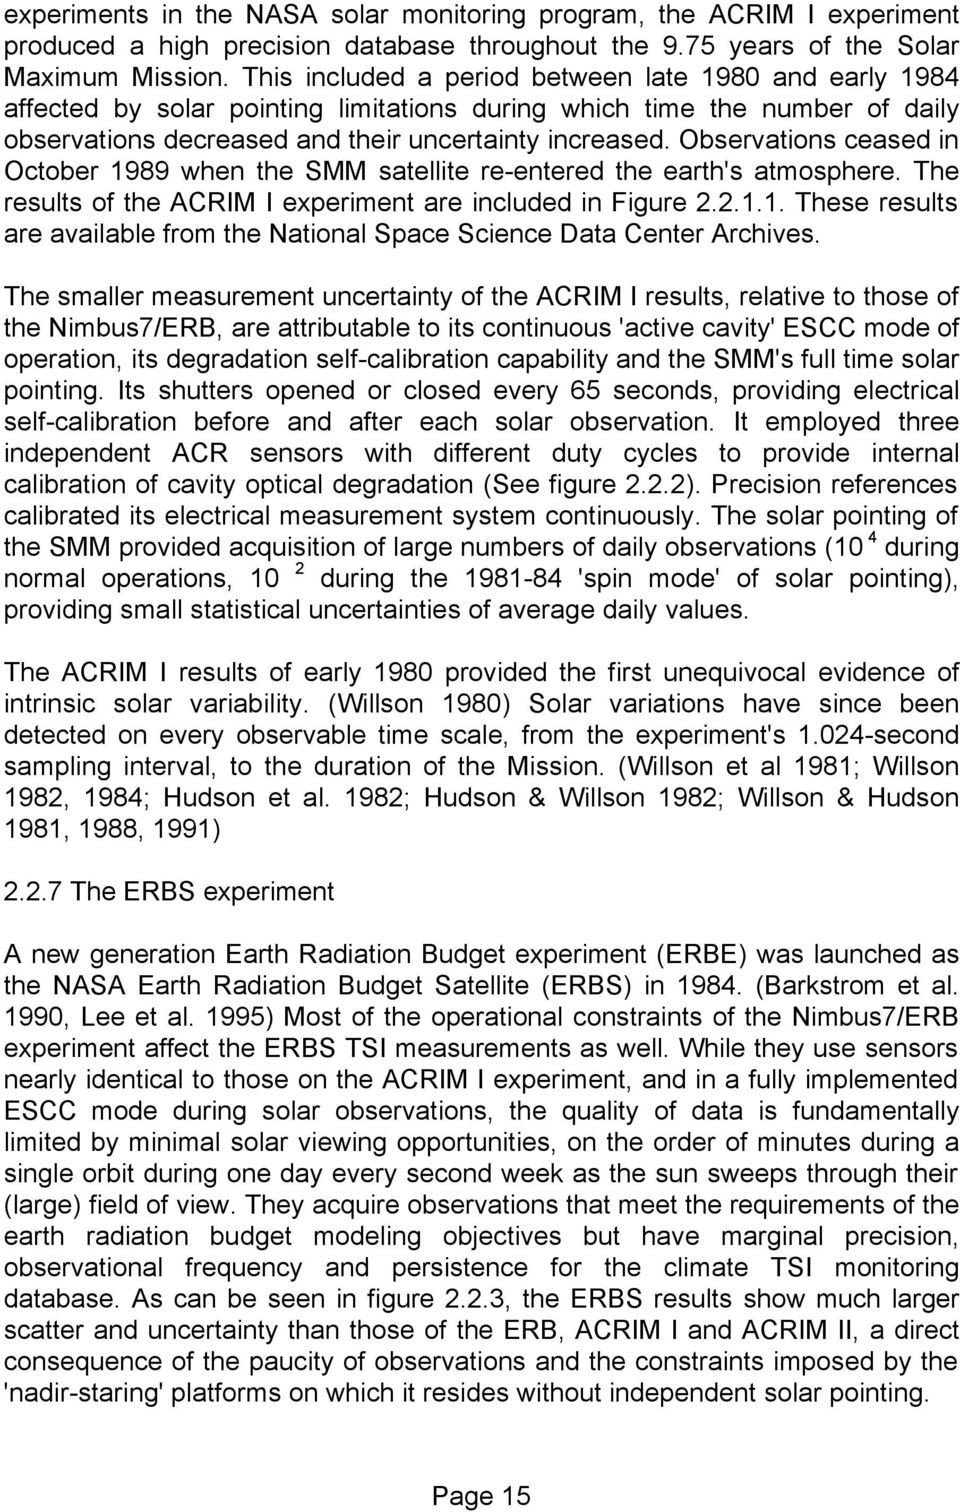 Observations ceased in October 1989 when the SMM satellite re-entered the earth's atmosphere. The results of the ACRIM I experiment are included in Figure 2.2.1.1. These results are available from the National Space Science Data Center Archives.